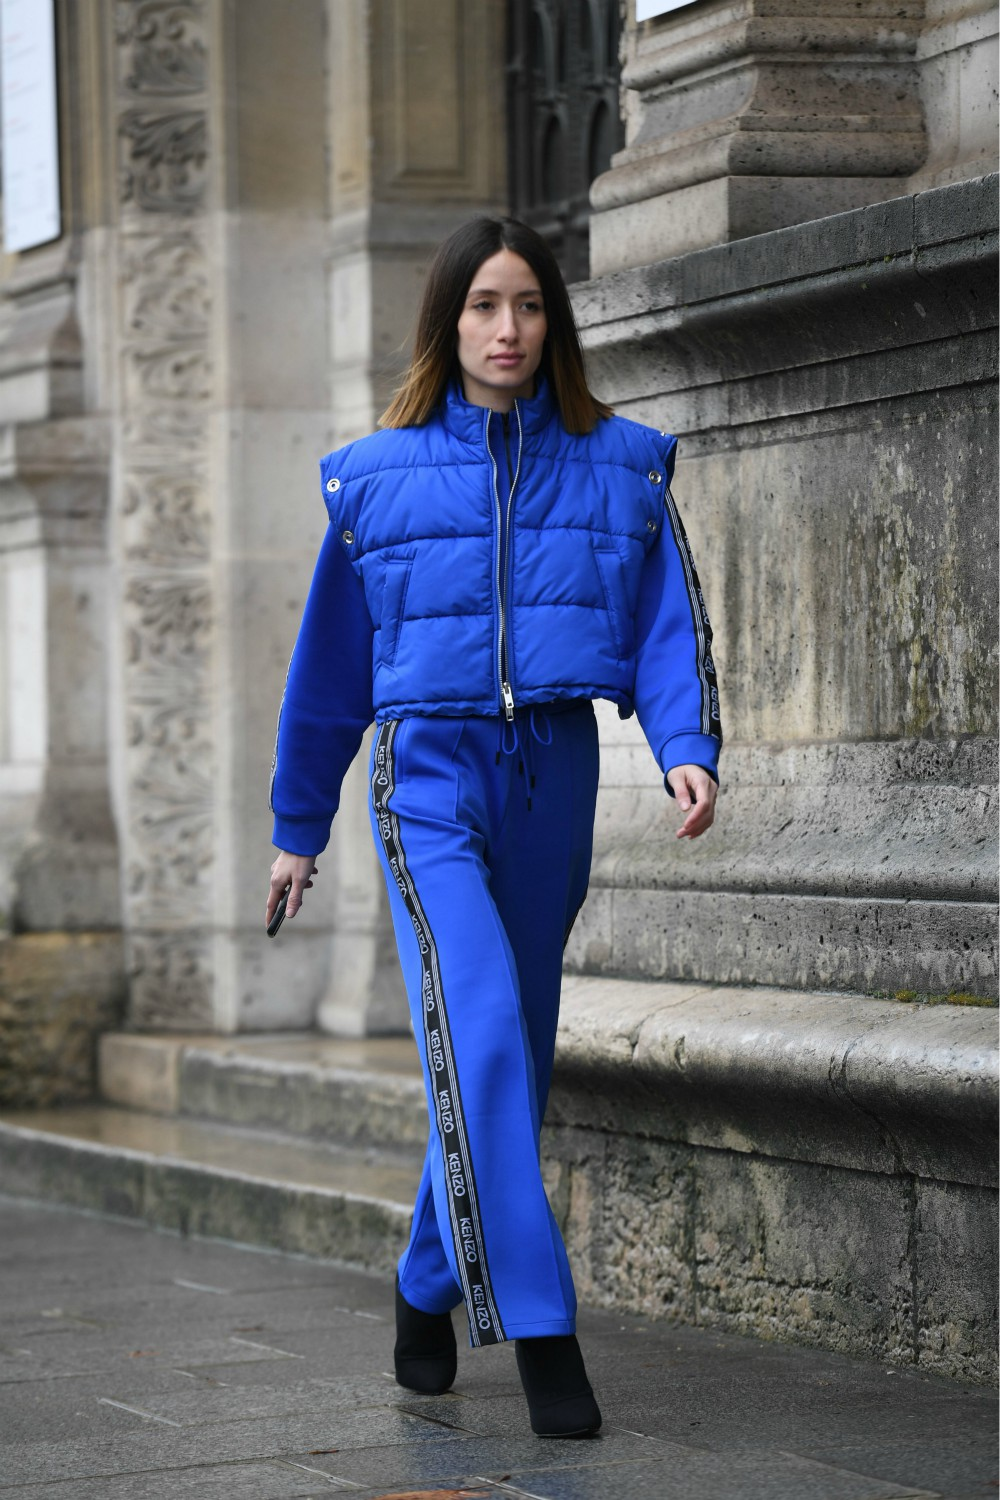 MakerSights says Princess Blue brings richness and royalty into consumer wardrobes as temperatures warm up.